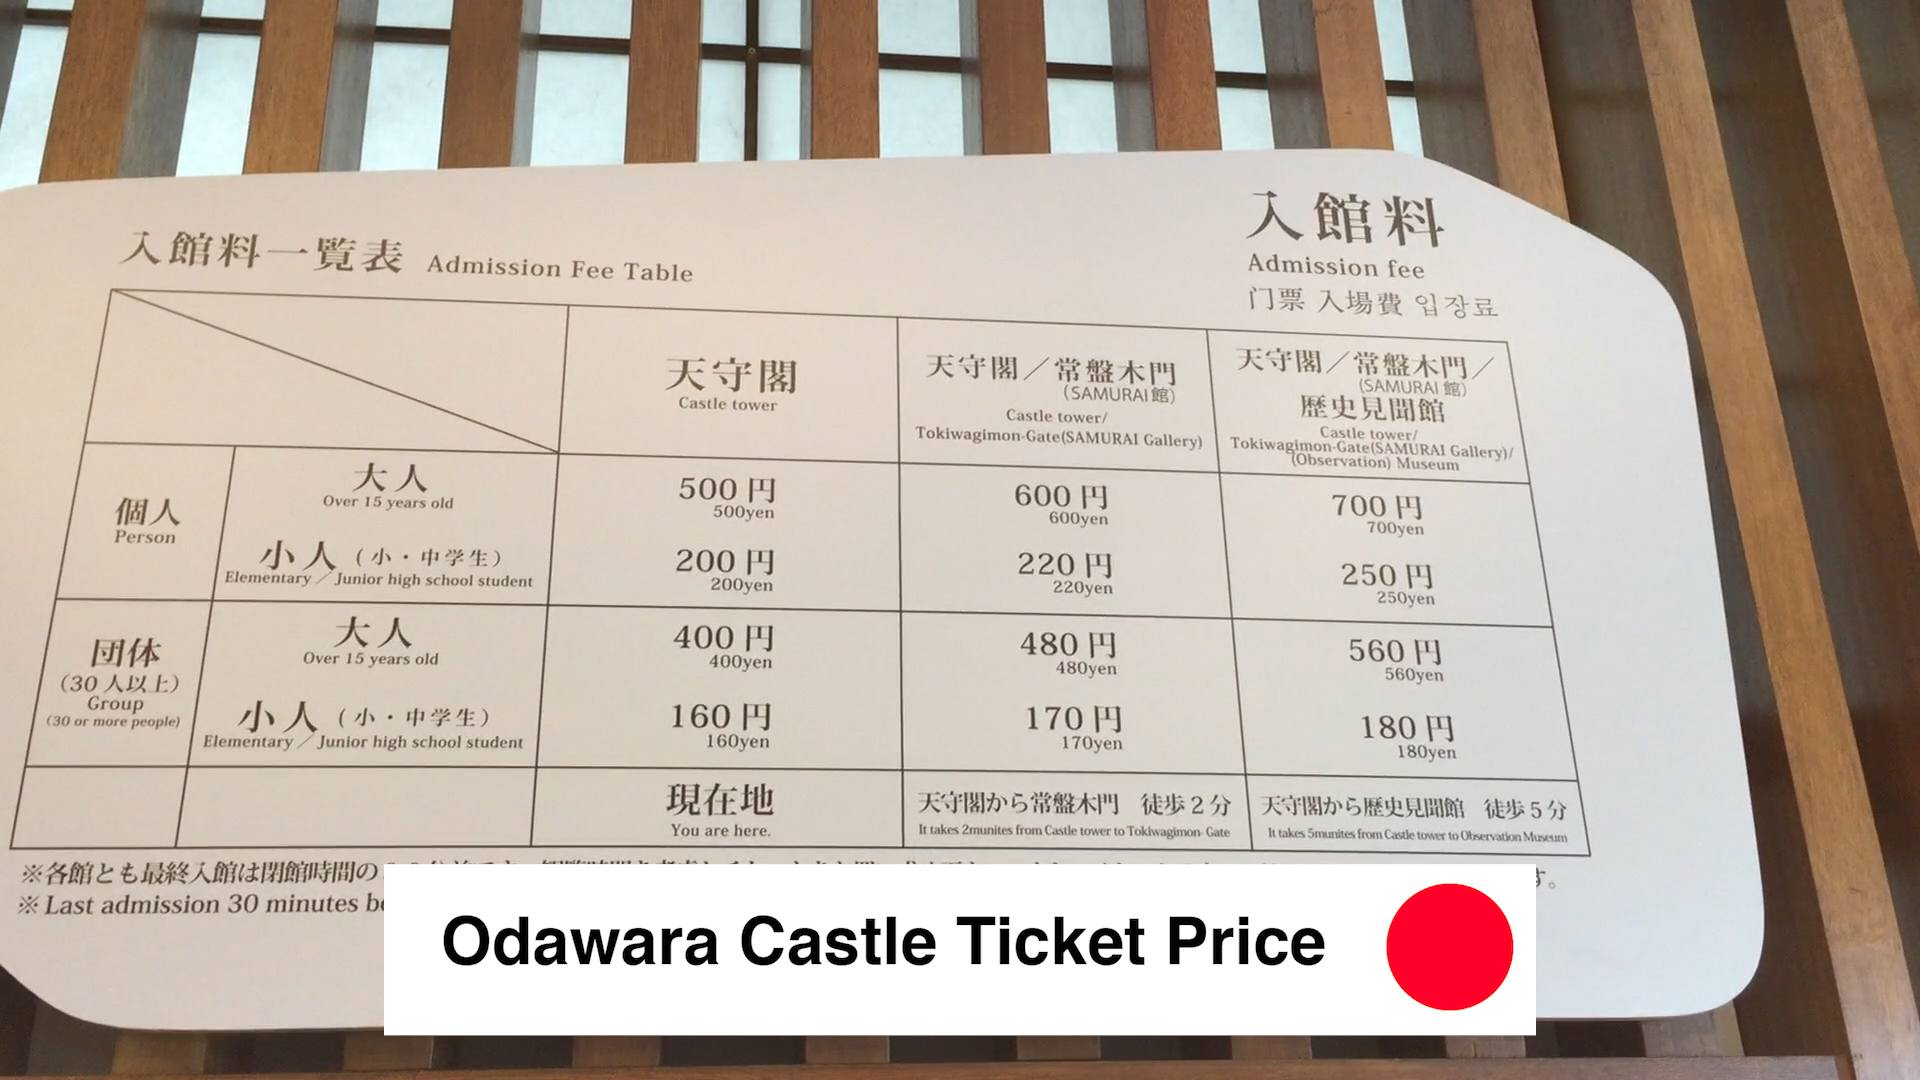 Odawara Castle Ticket Price - Odawara Castle Japan Guide Review Video - 9 Reasons To See Odawara Castle Kanagawa Japan 🇯🇵 🏯 🌸